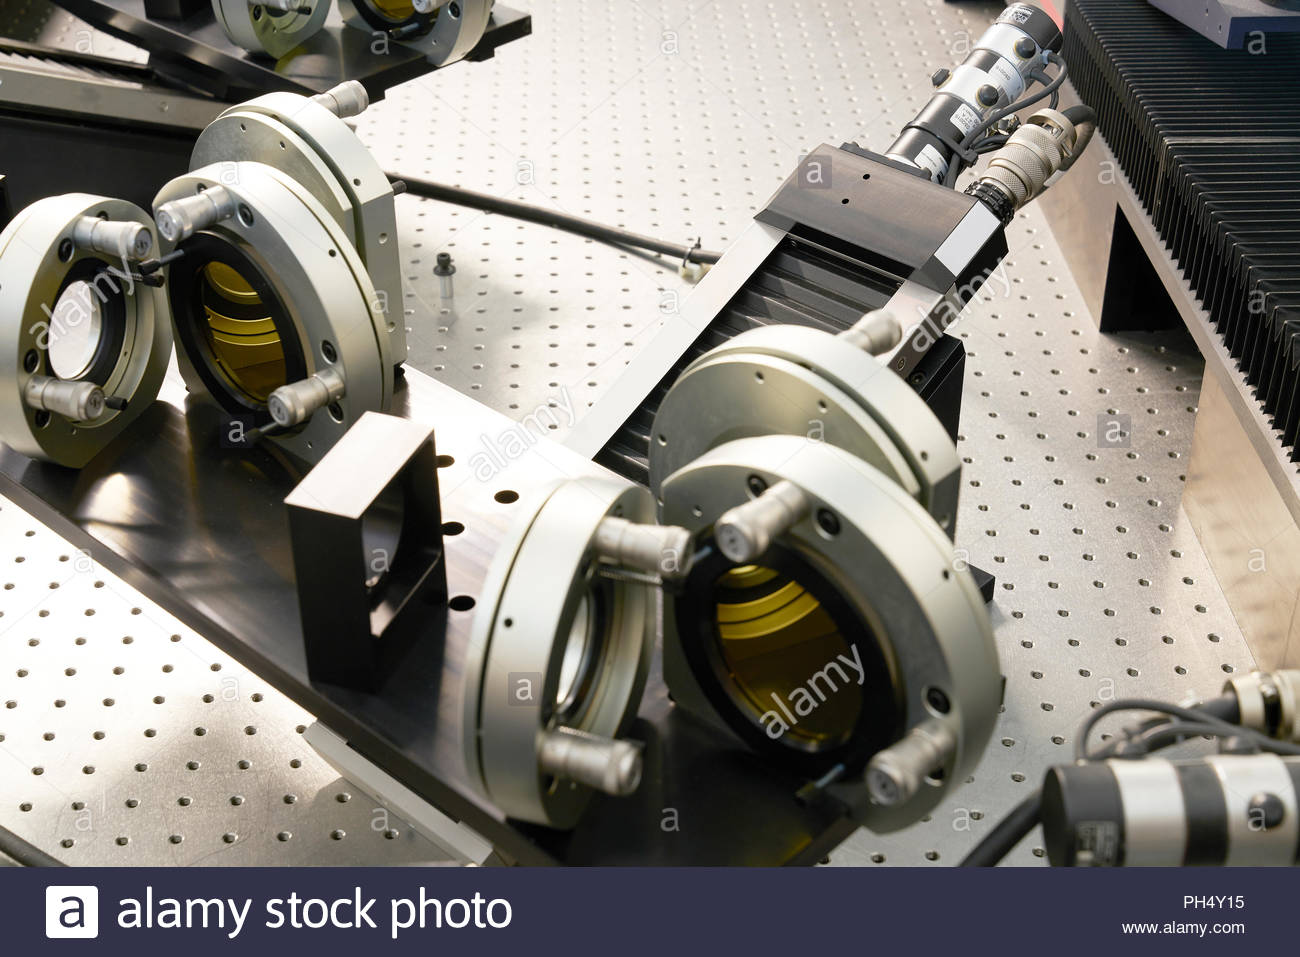 Machine parts in a workshop at Paranal Observatory - Stock Image